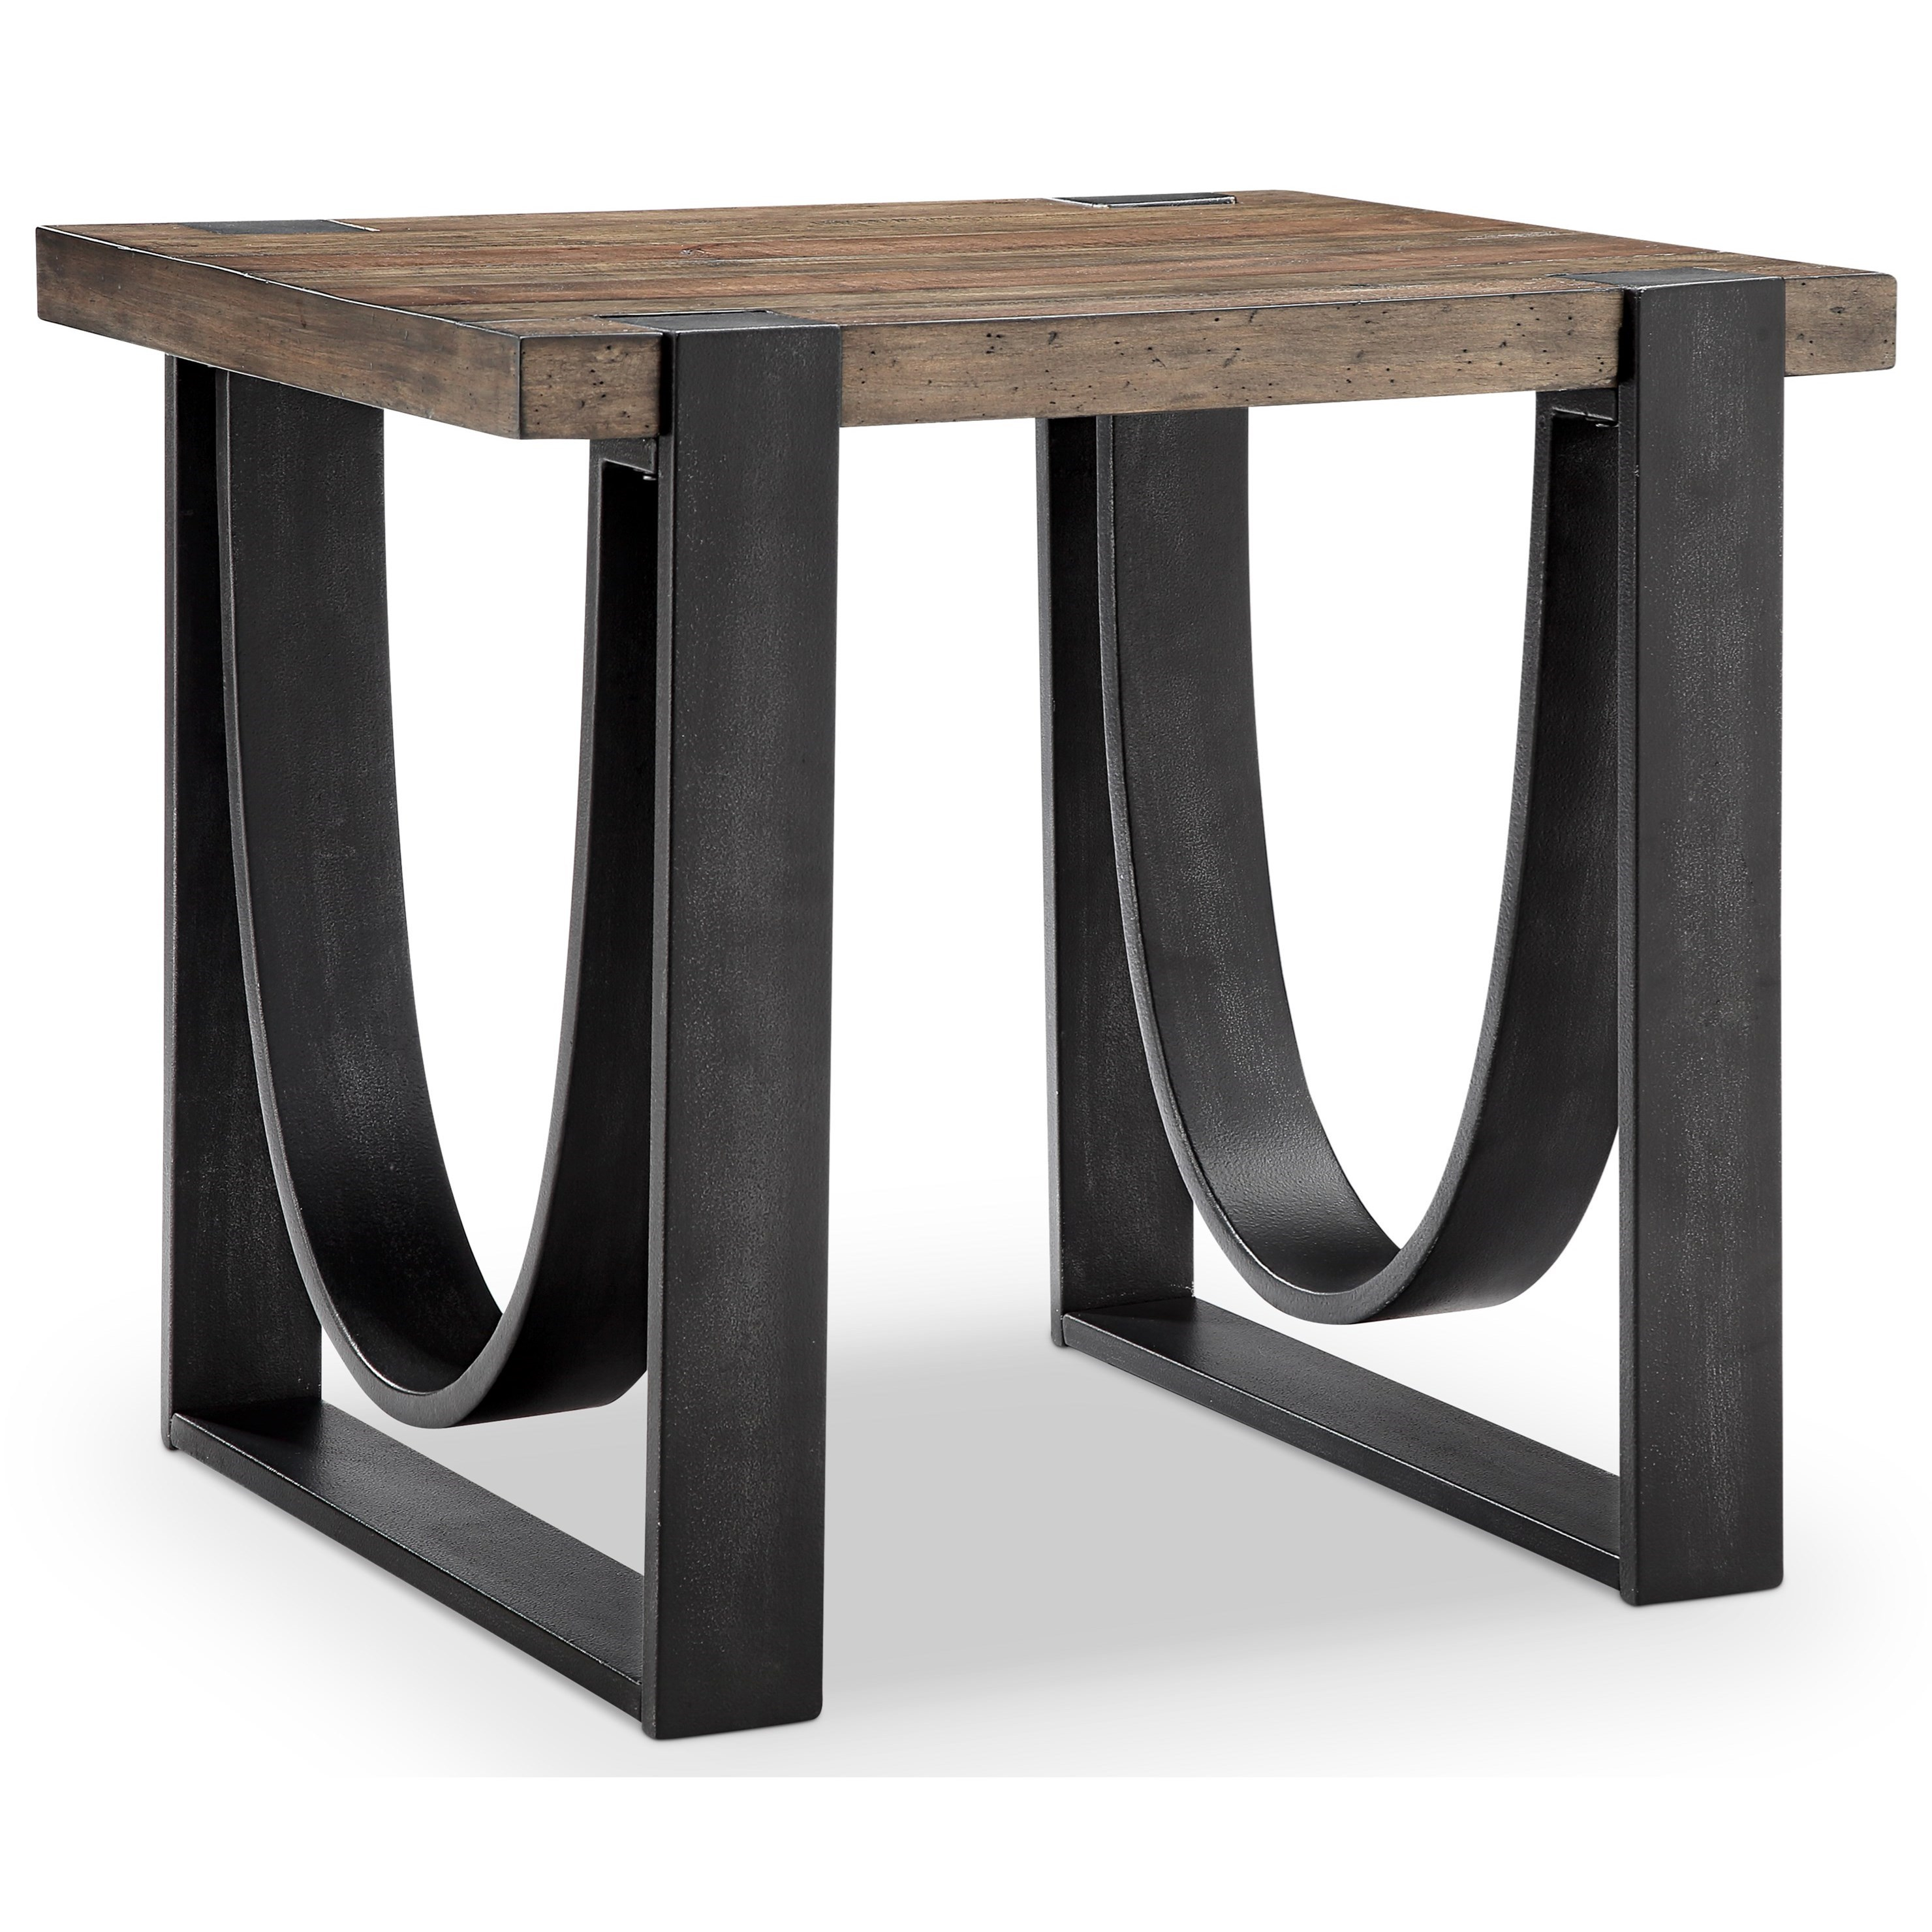 Bowden  Rectangular End Table by Magnussen Home at Darvin Furniture